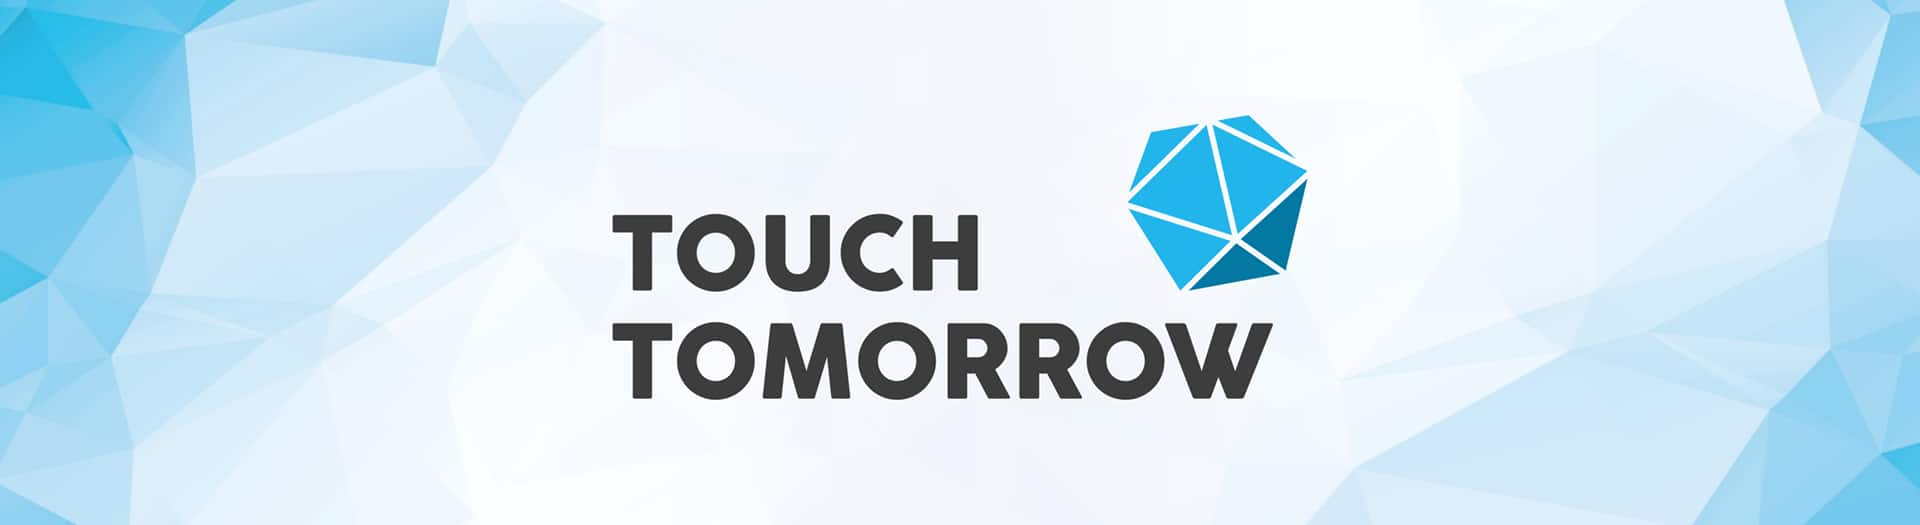 GRafik Touch Tomorrow